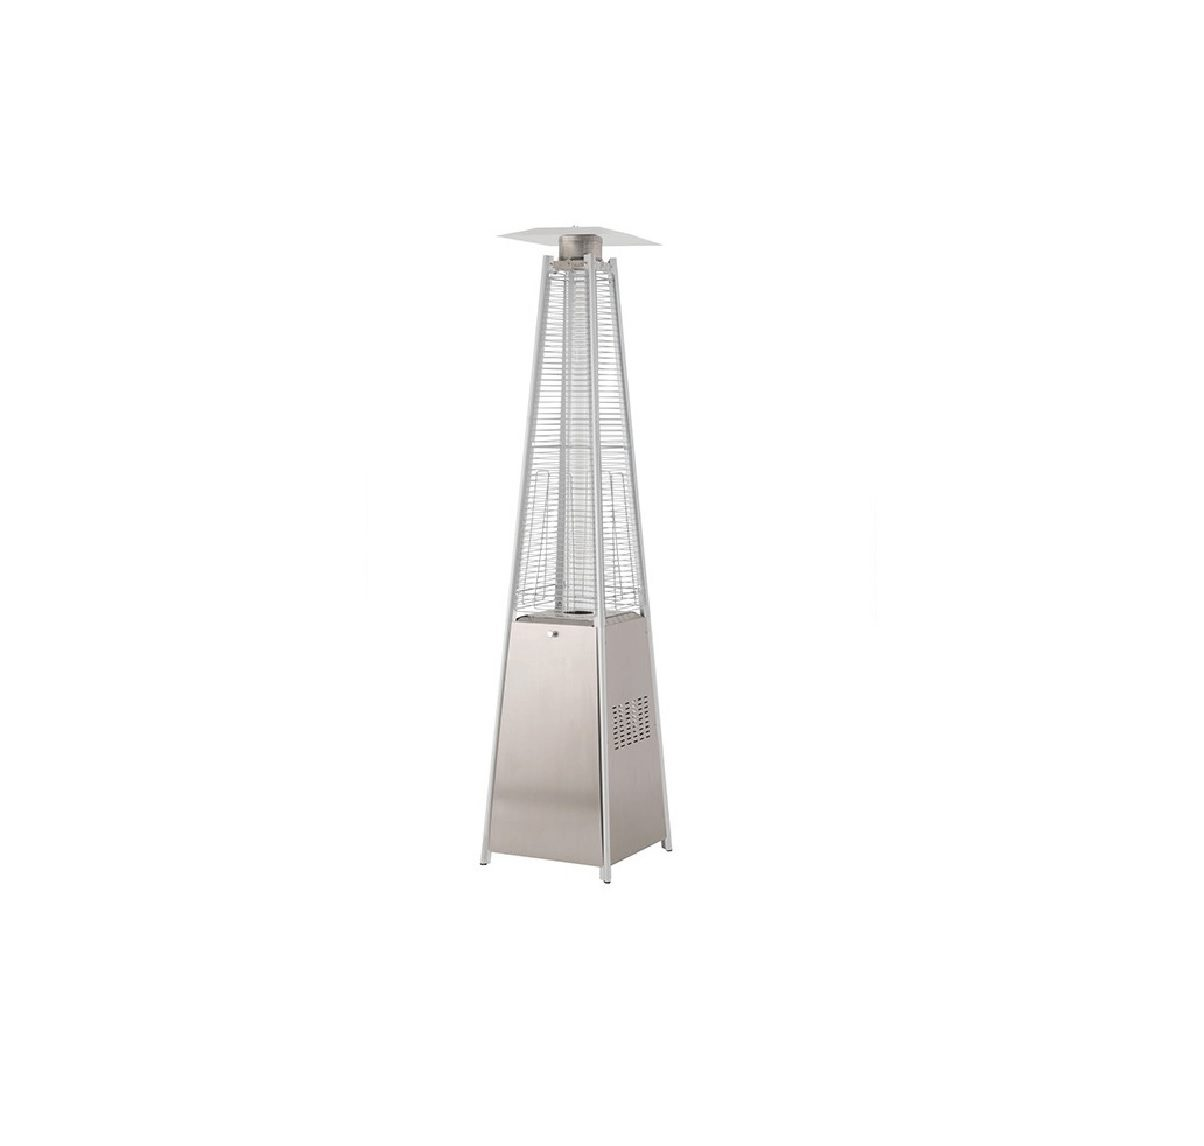 Lifestyle Tahiti Stainless Steel patio heater